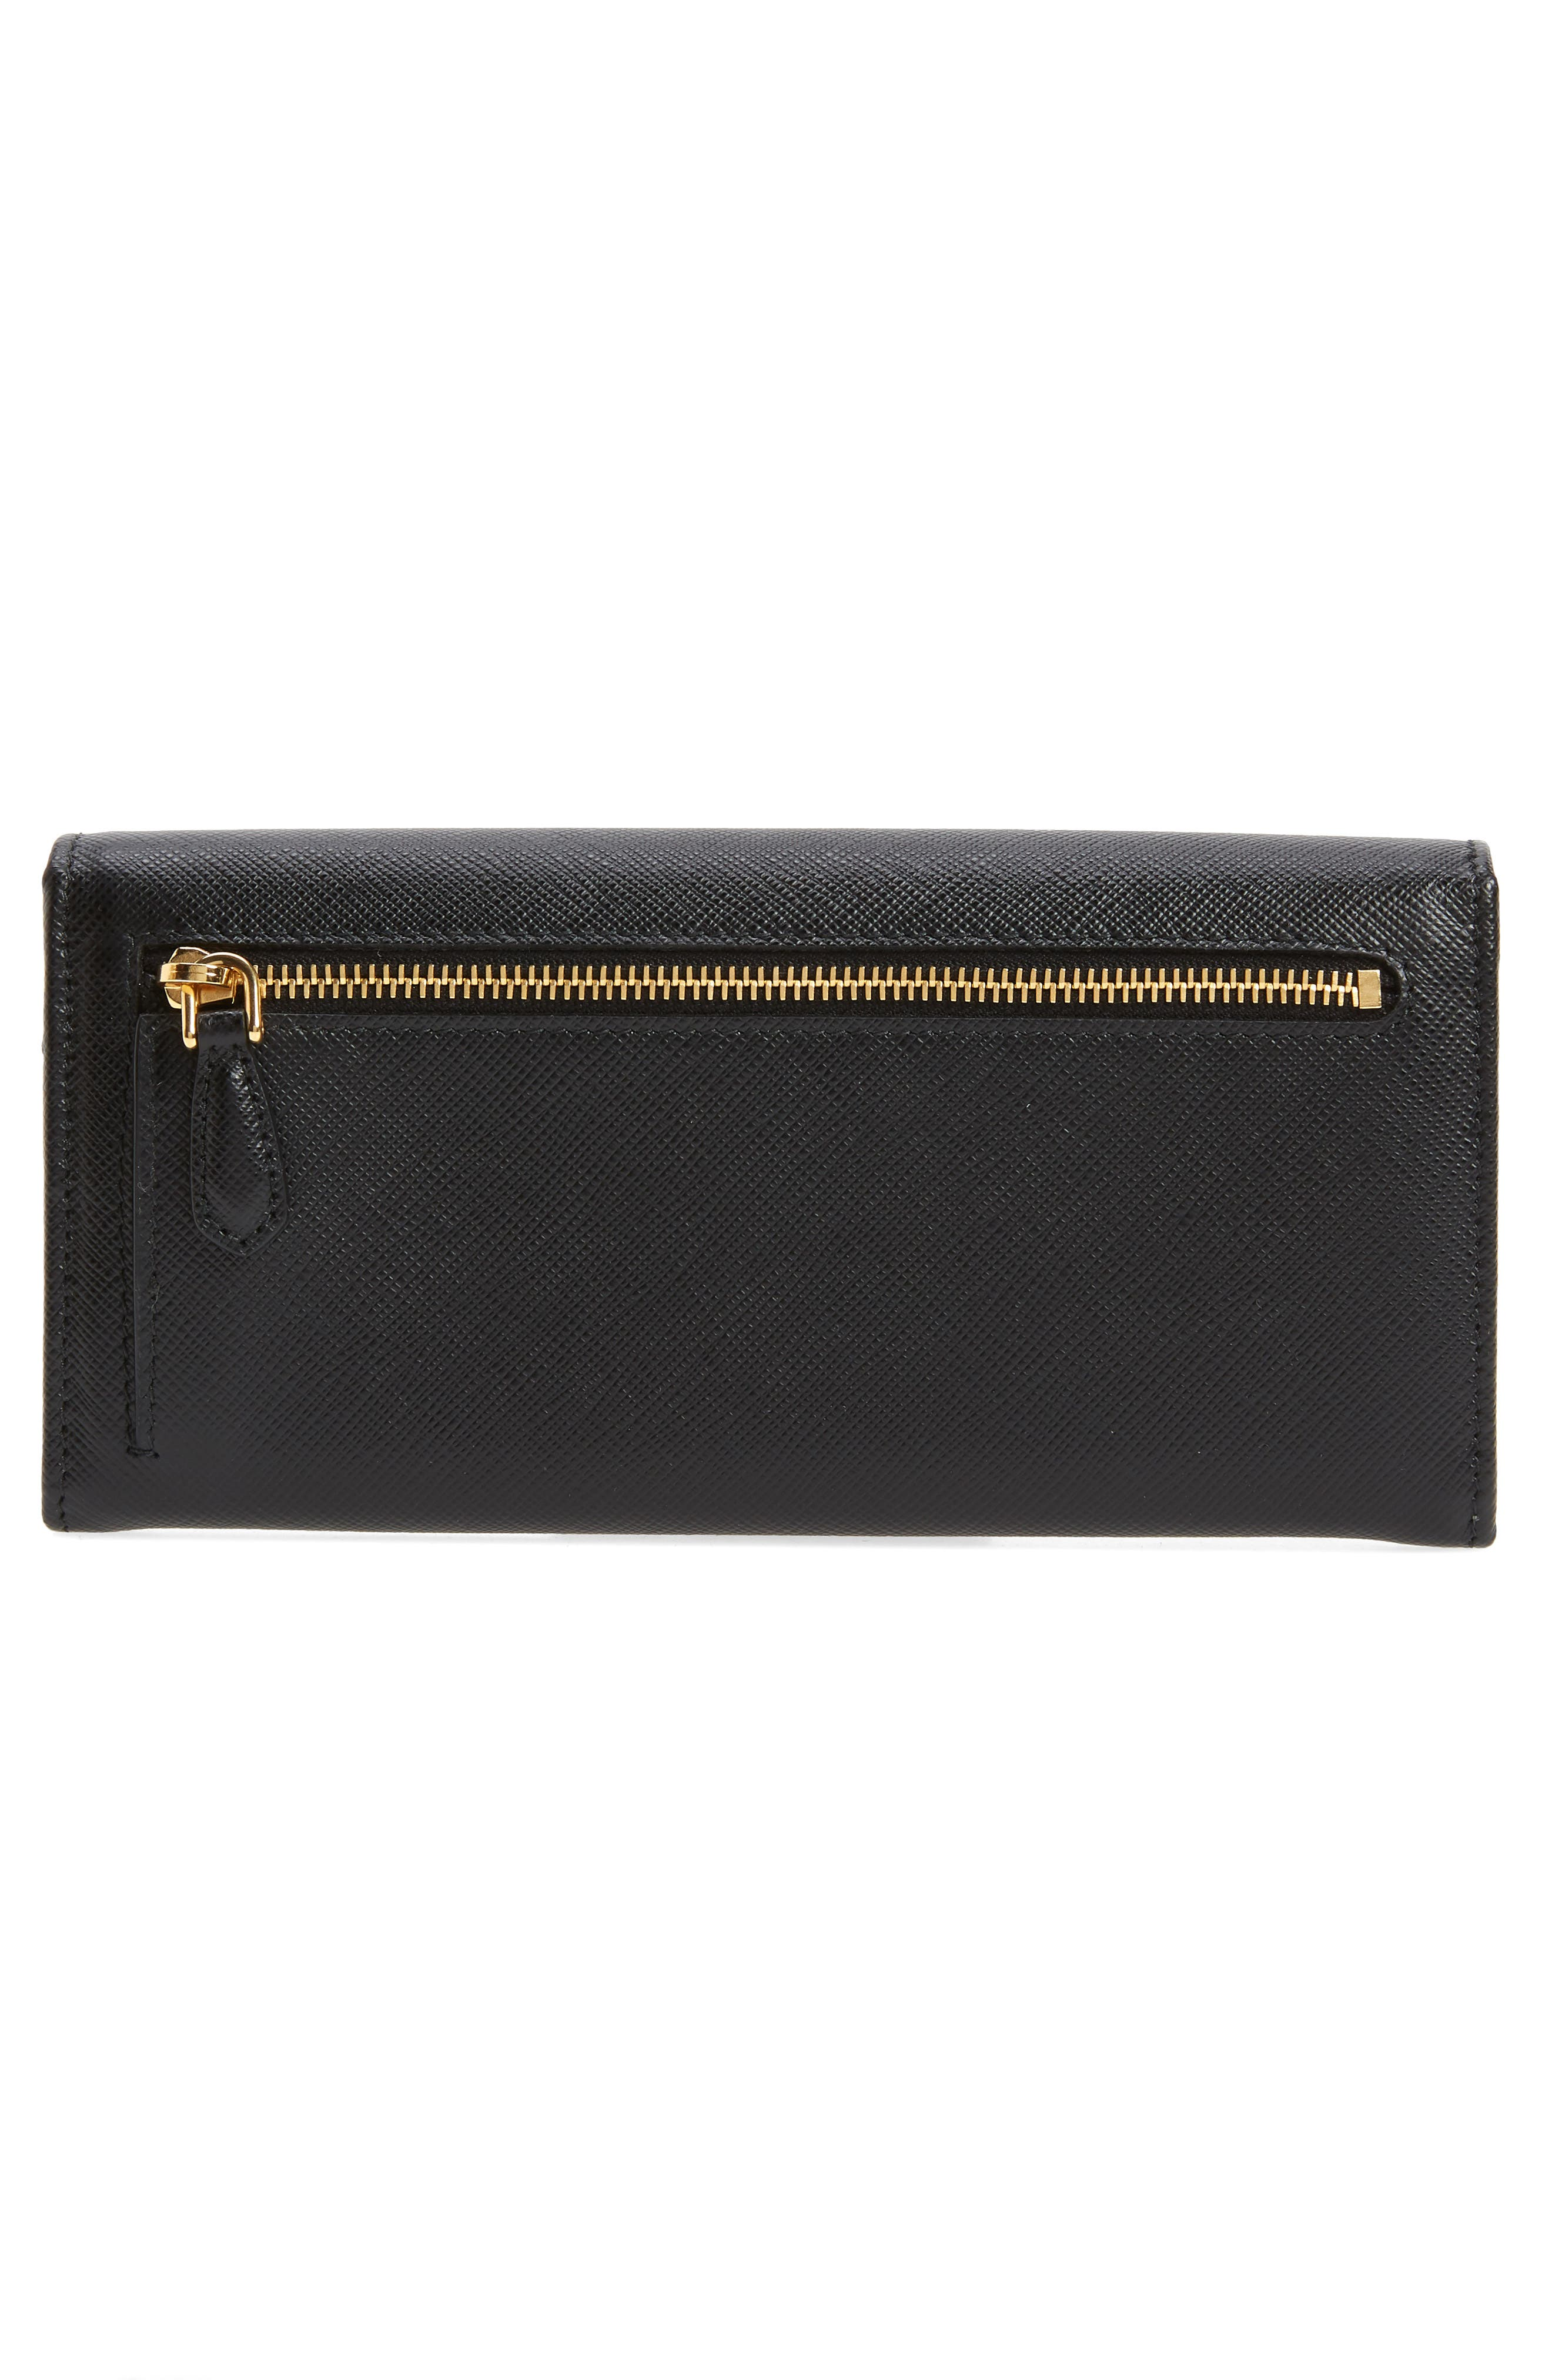 Metal Bar Saffiano Leather Continental Wallet,                             Alternate thumbnail 3, color,                             001